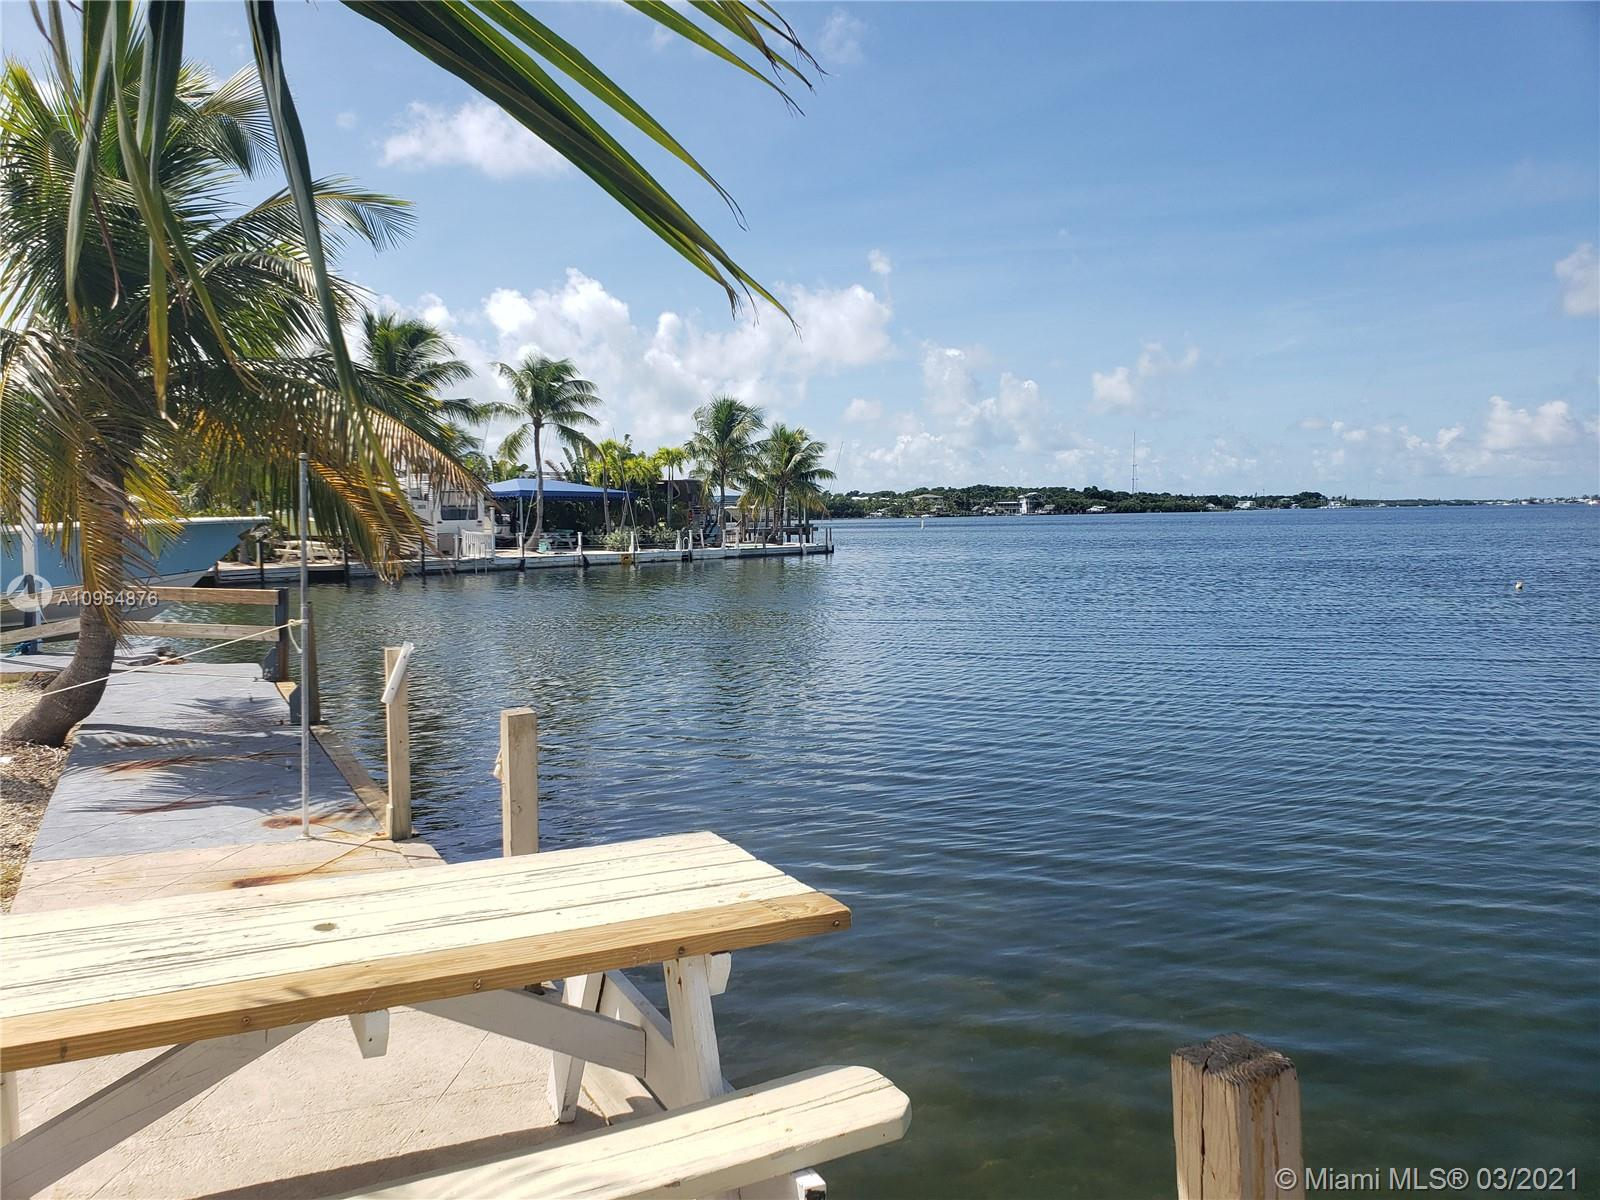 Calusa Campground A Condo Real Estate Listings Main Image